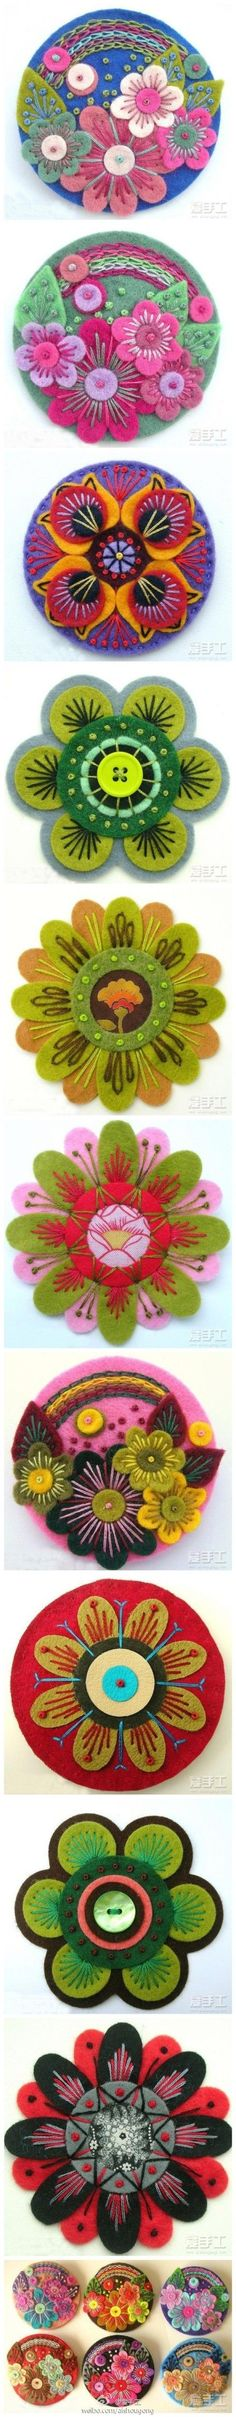 Beautiful felted floral pieces #felted #feltcrafts